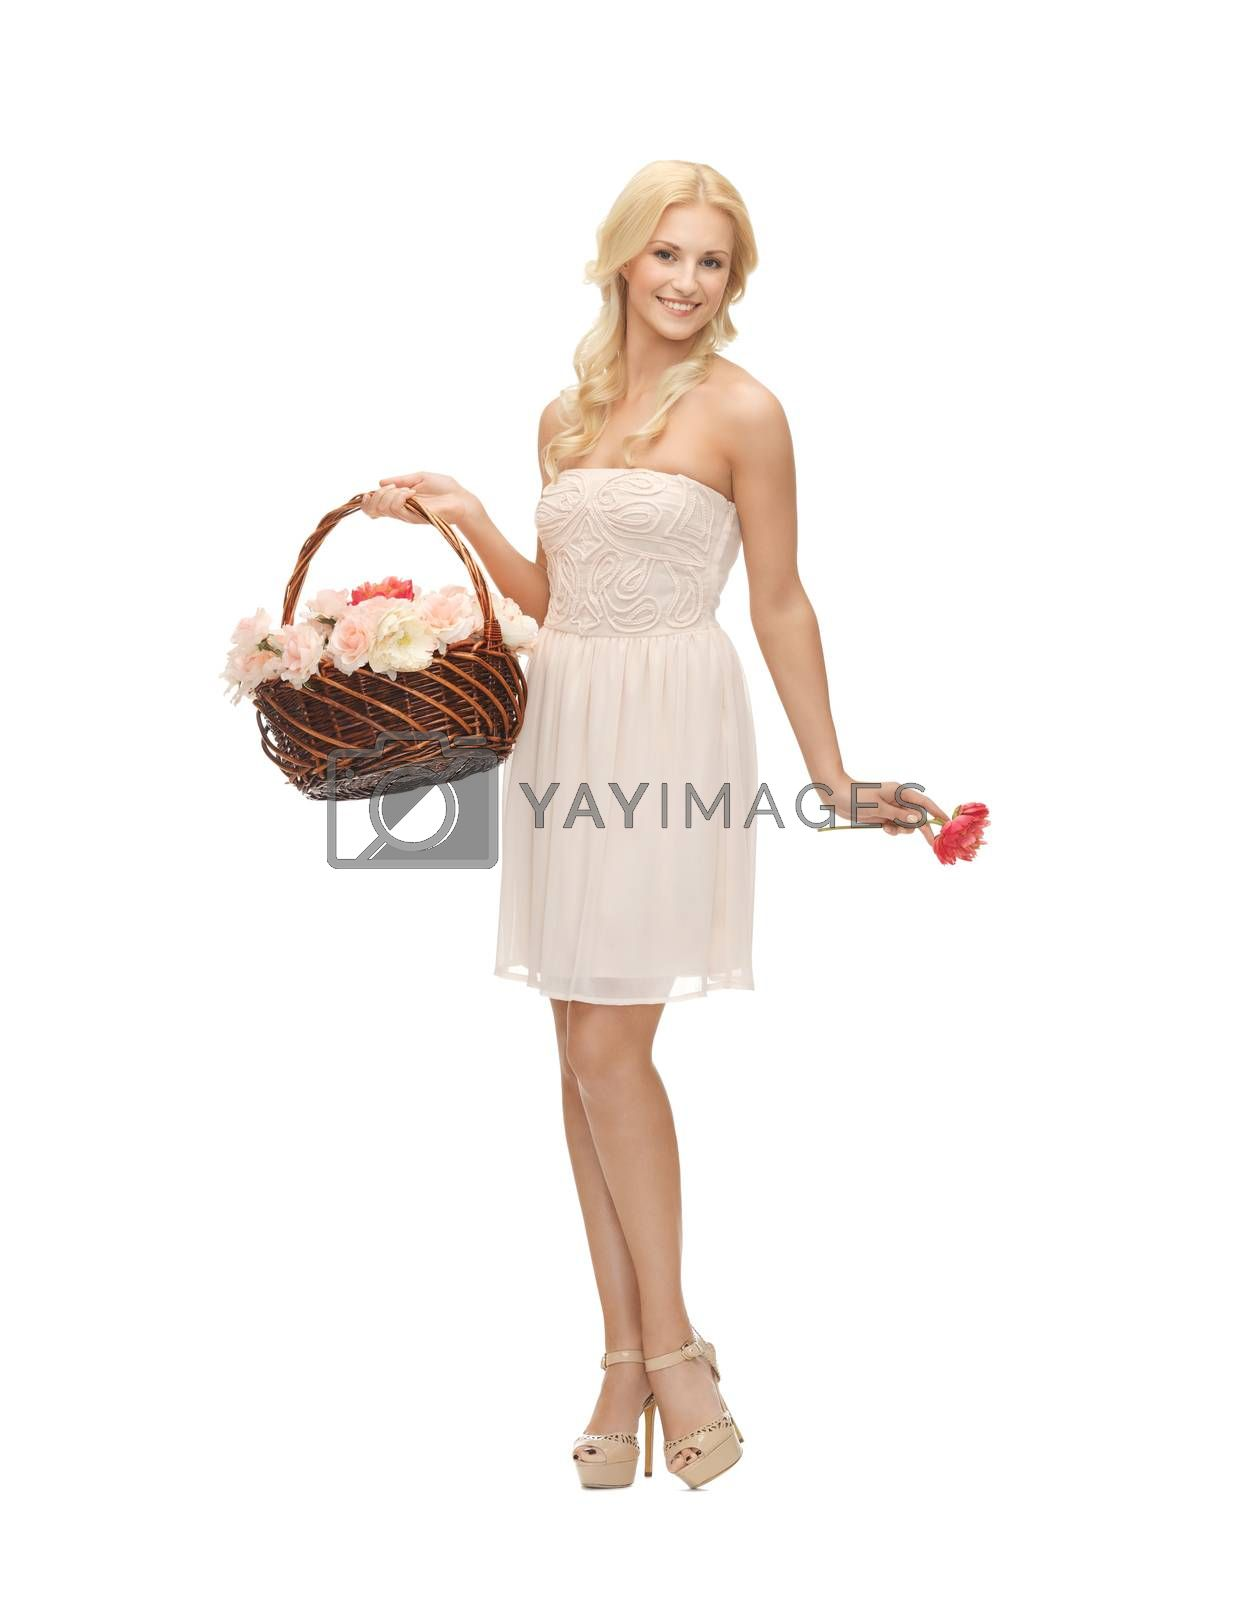 woman with basket full of flowers by dolgachov